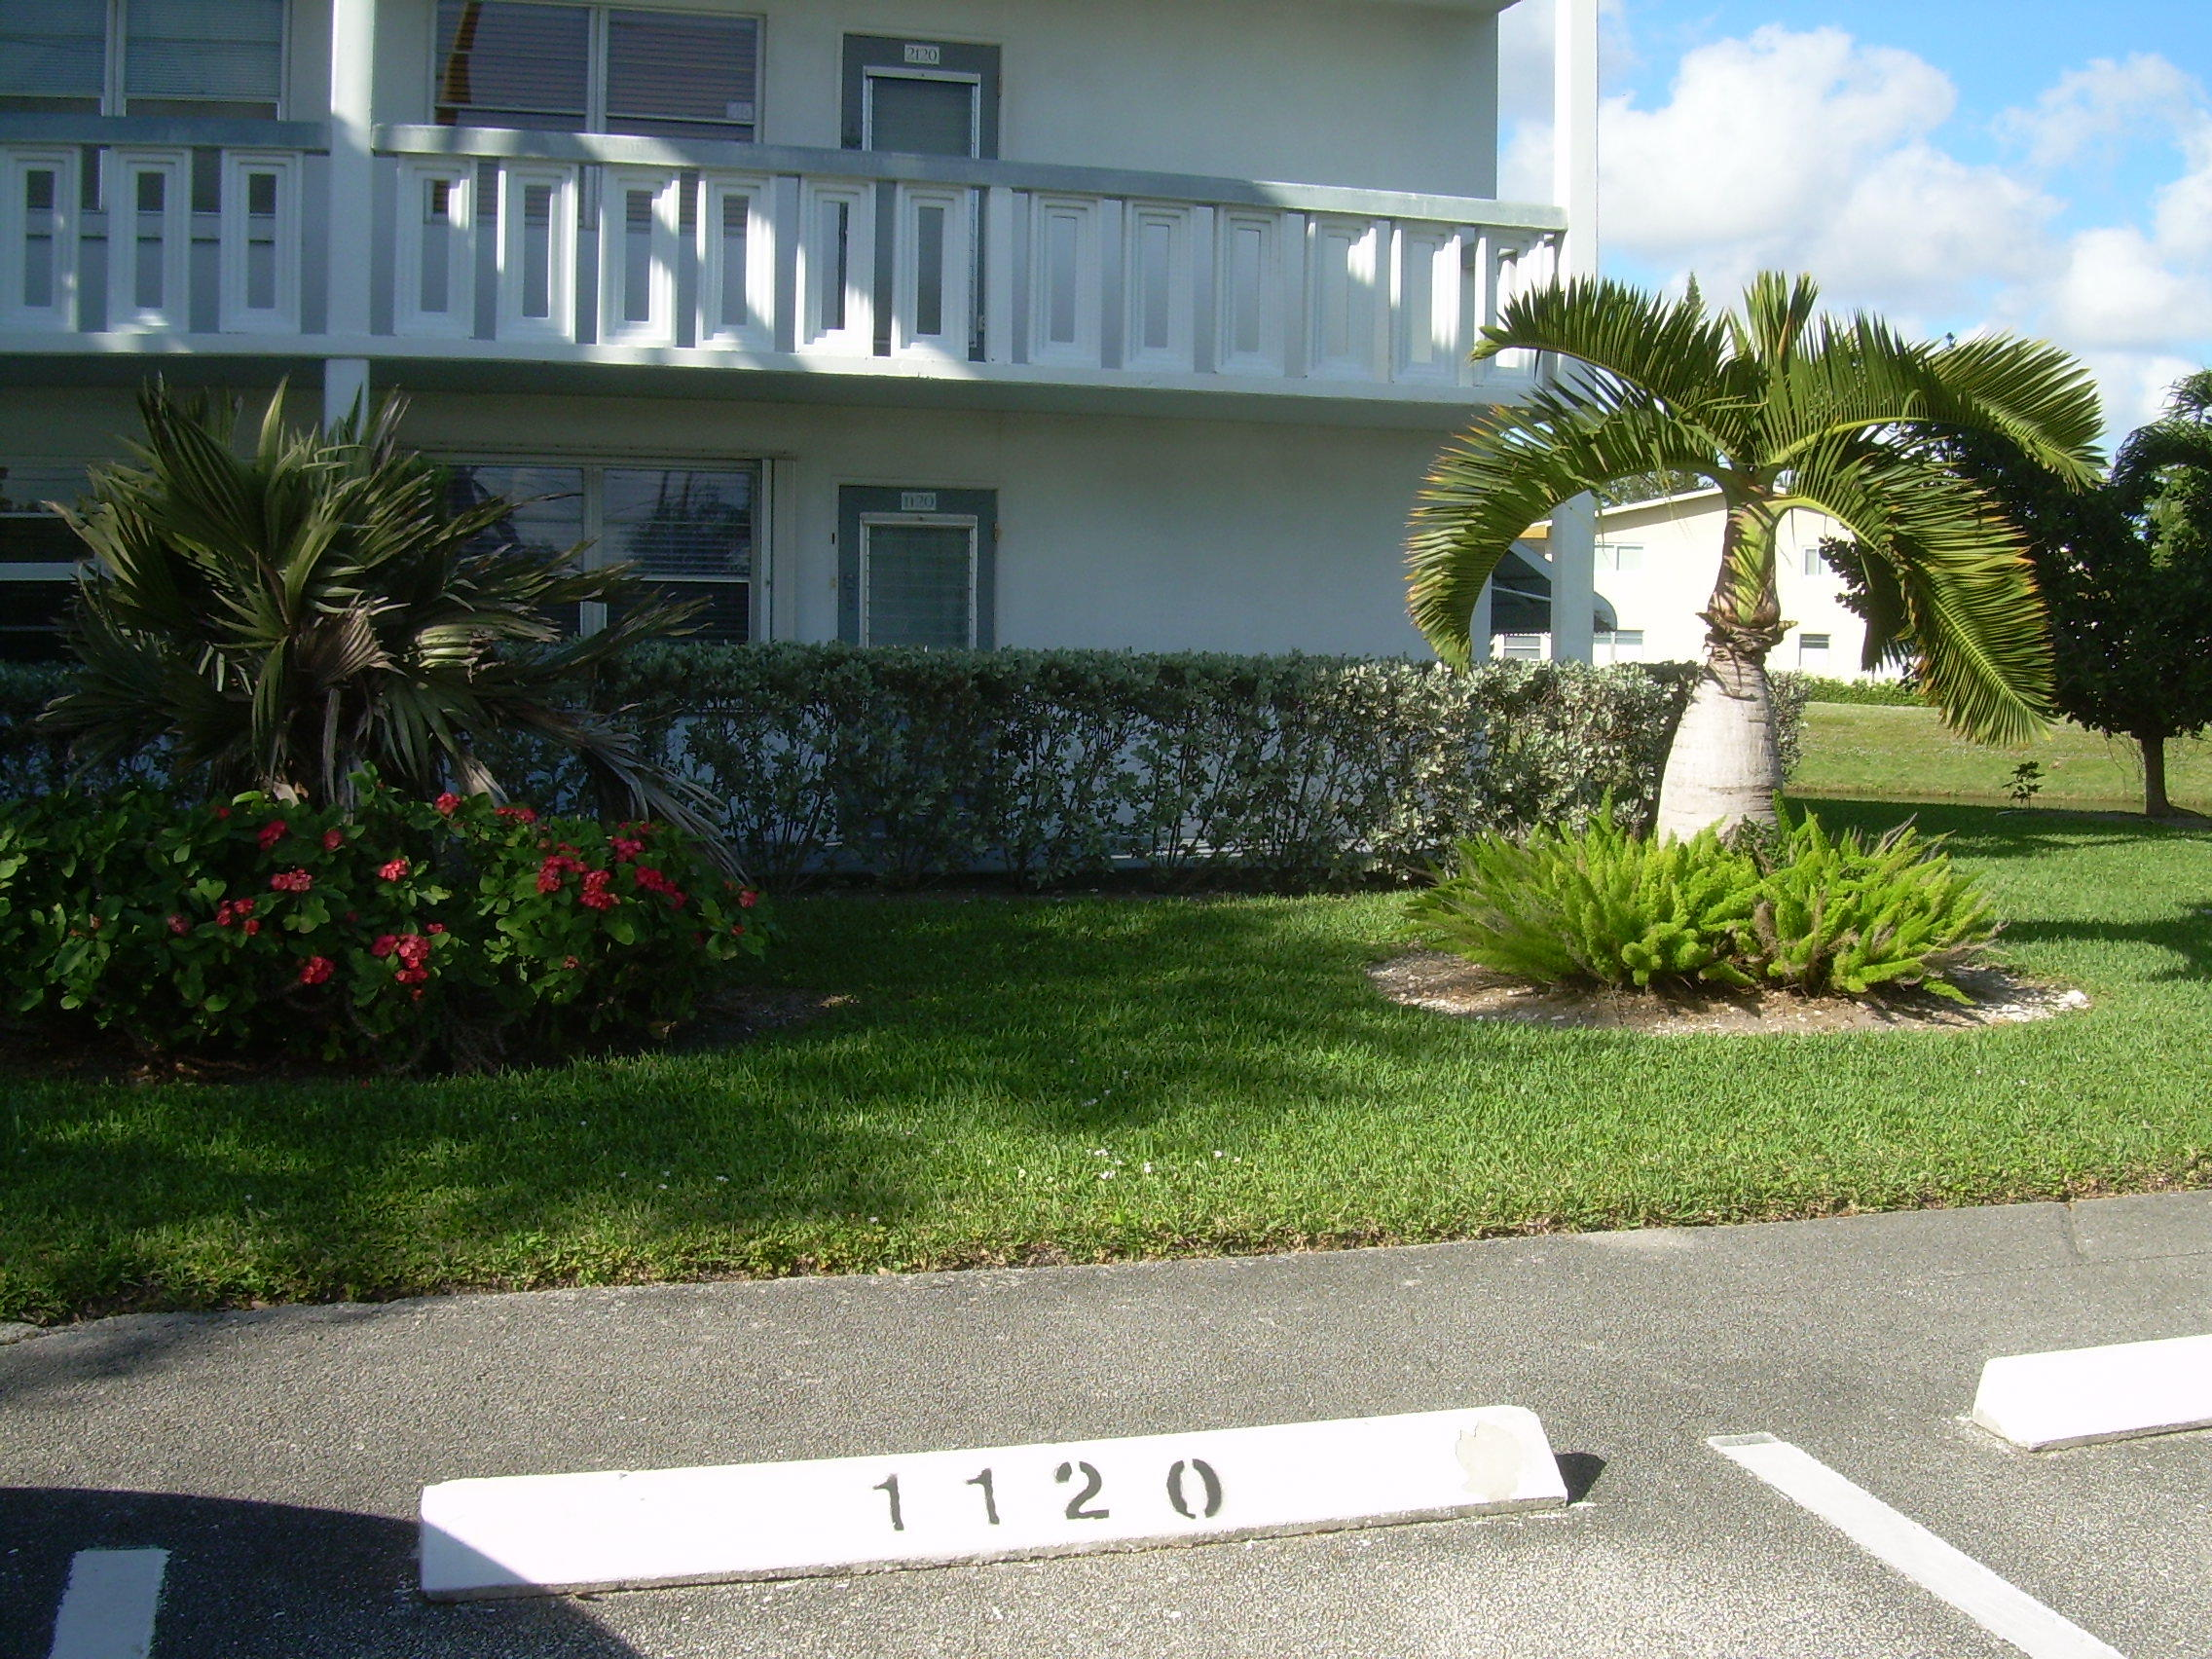 1120 Newport U, Deerfield Beach, Florida 33442, 2 Bedrooms Bedrooms, ,2 BathroomsBathrooms,Condo/Coop,For Sale,Century Village,Newport U,1,RX-10387945